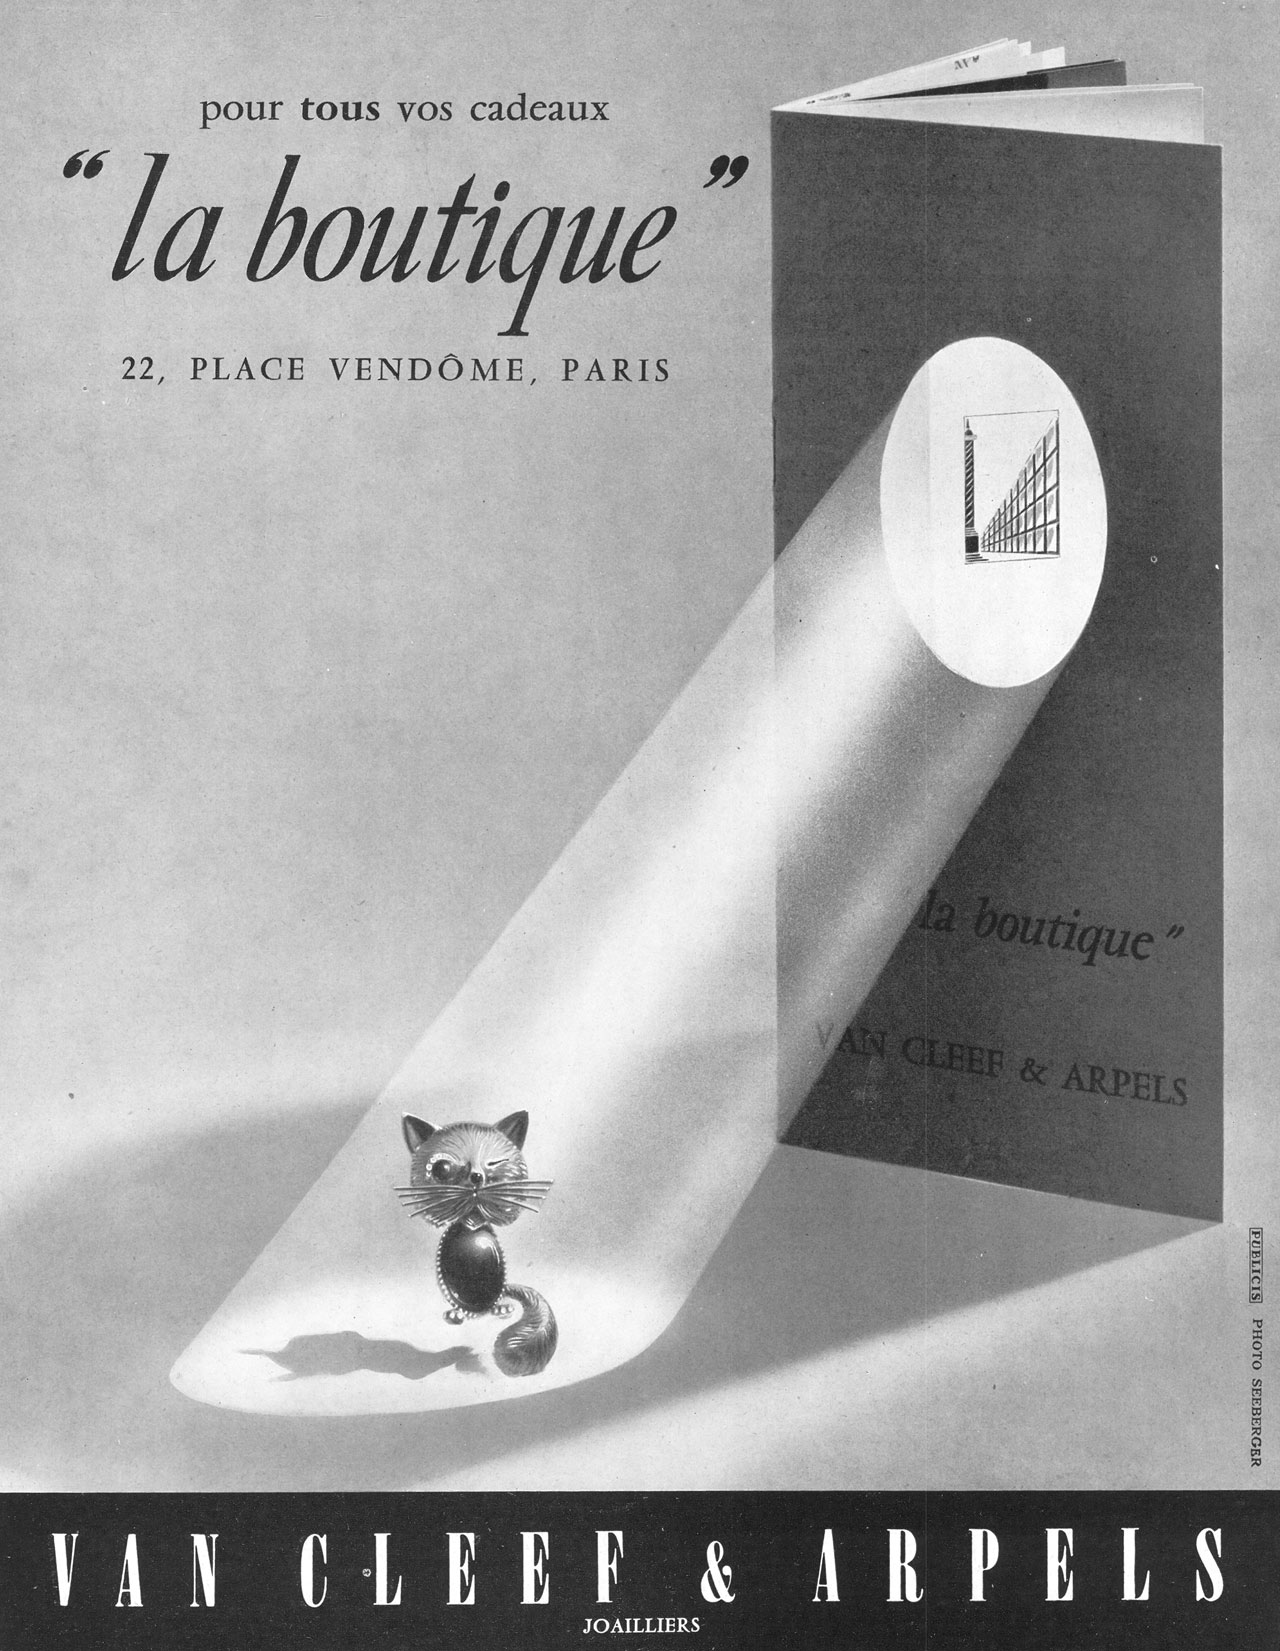 La Boutique advert, featuring the Chat Malicieux, June 1955. Photo © Seeberger.